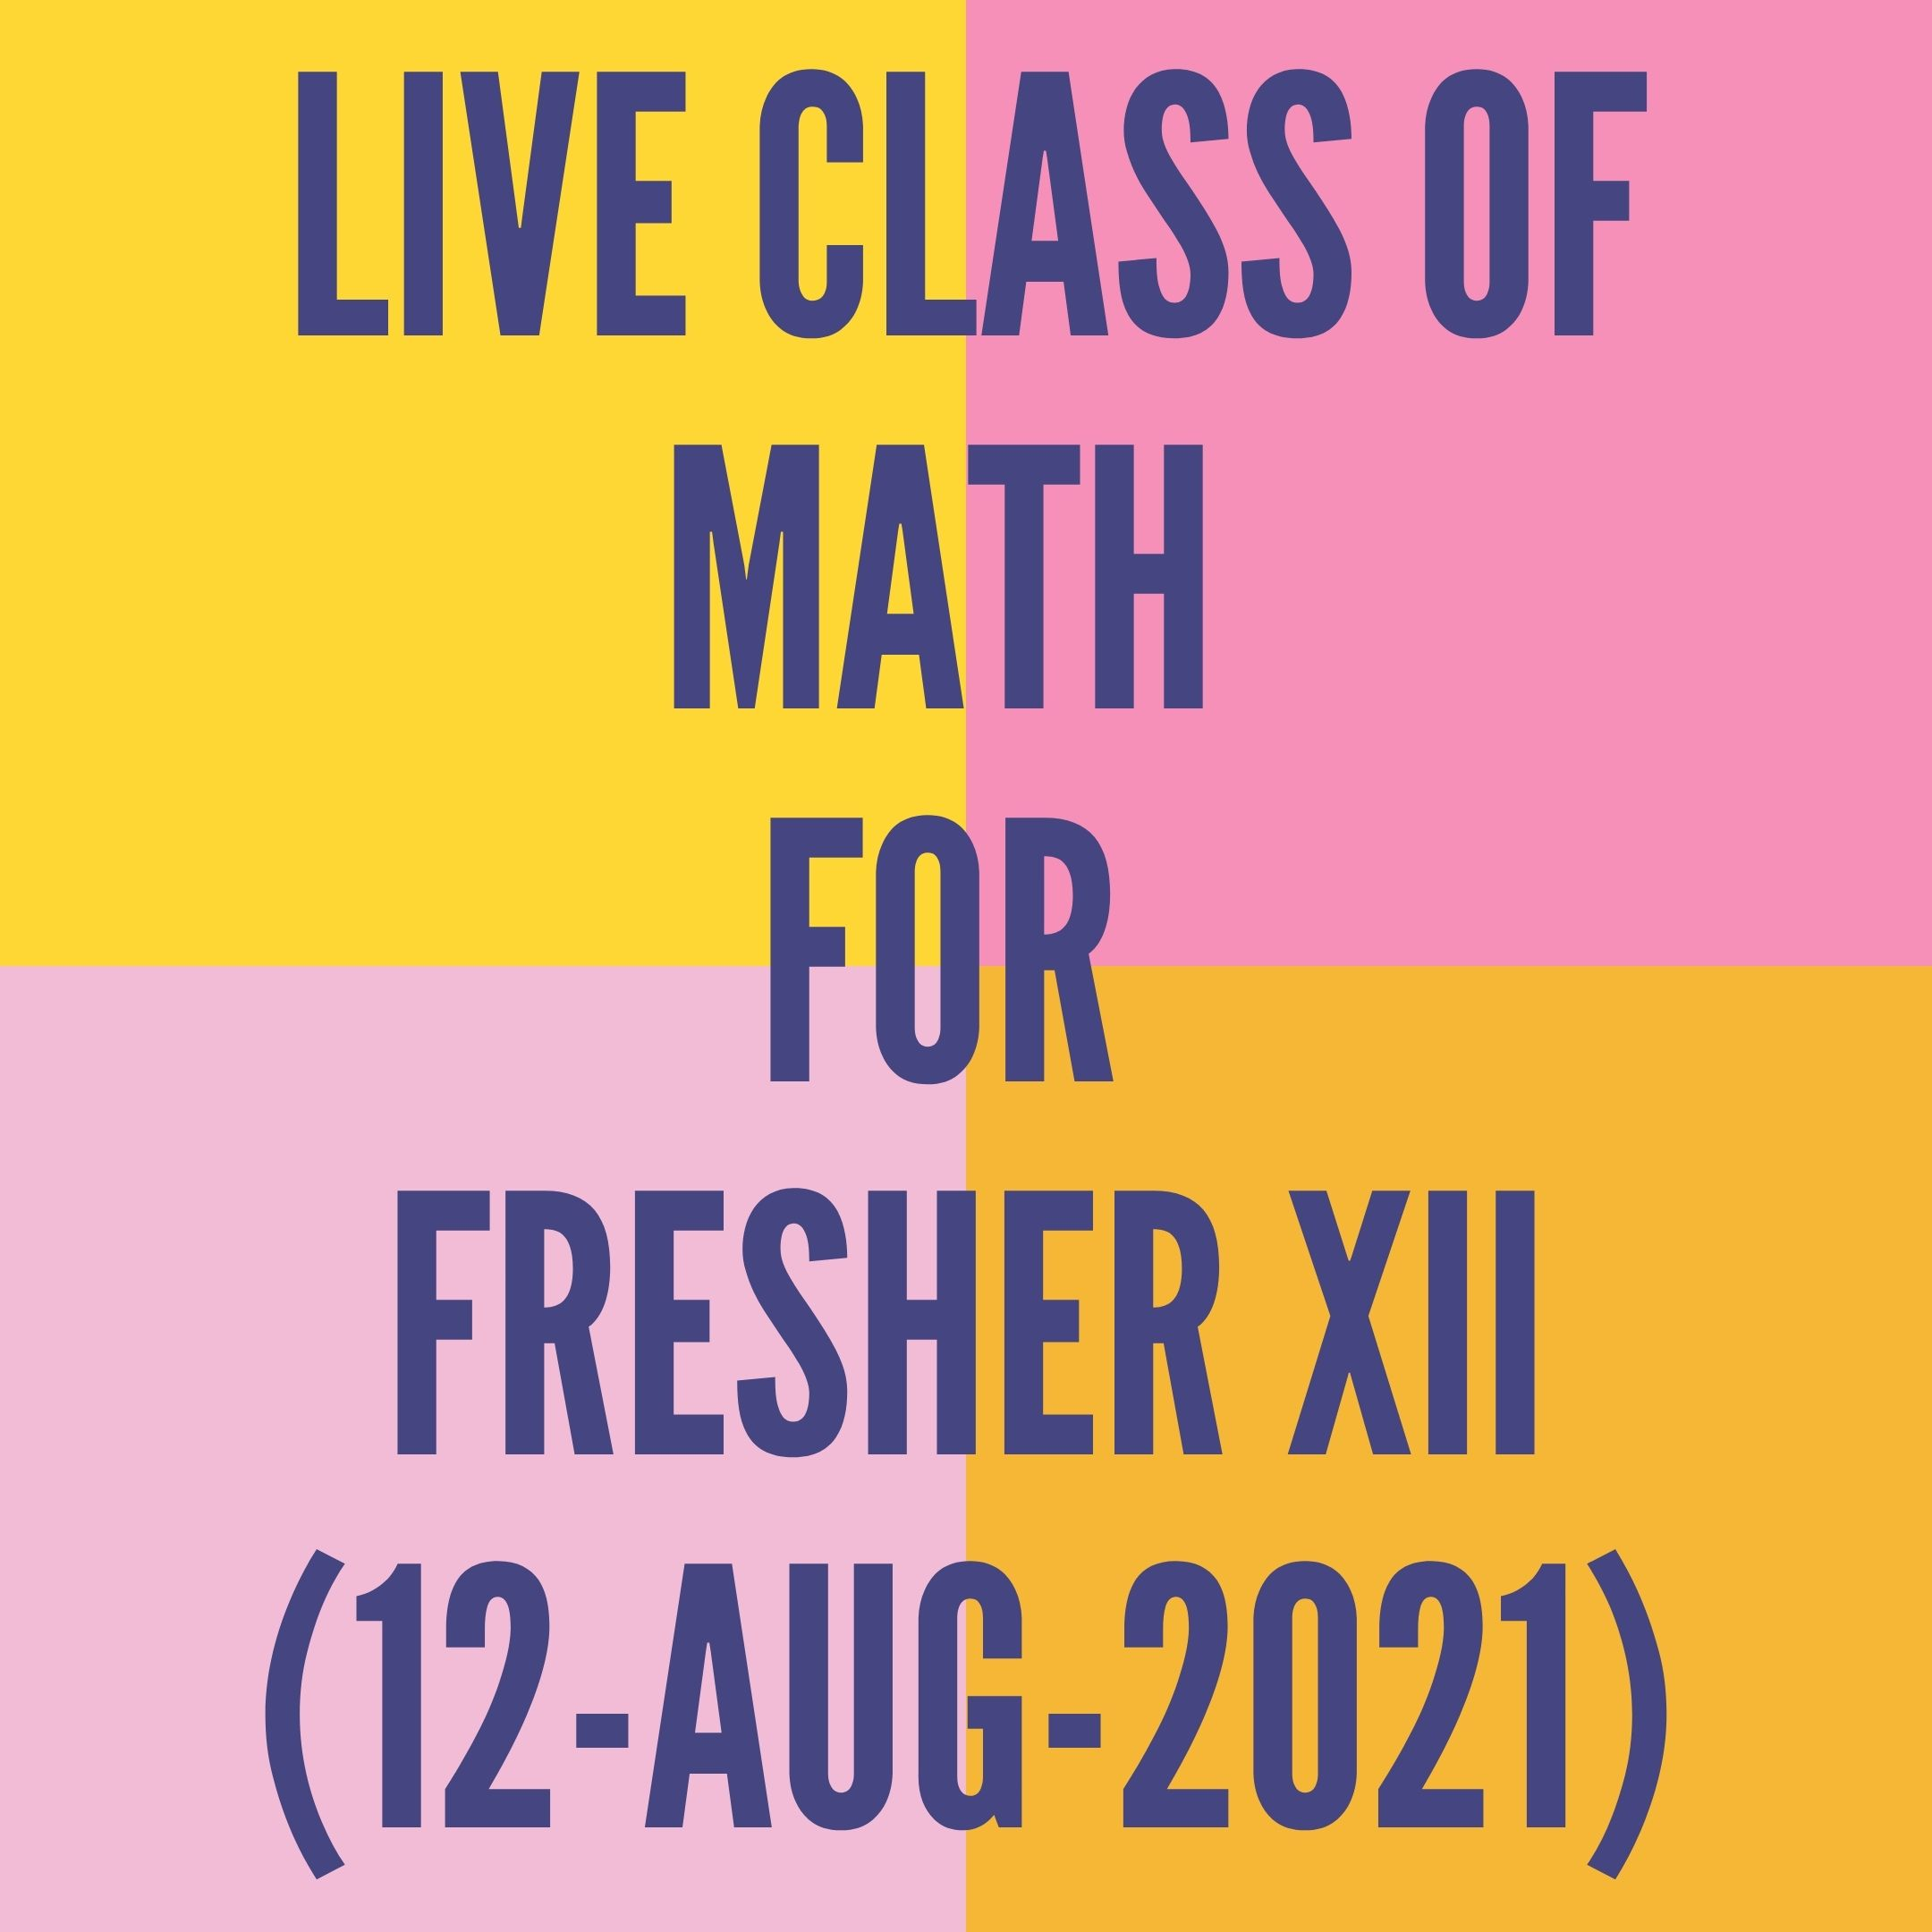 LIVE CLASS OF MATH FOR FRESHER (12-AUG-2021)